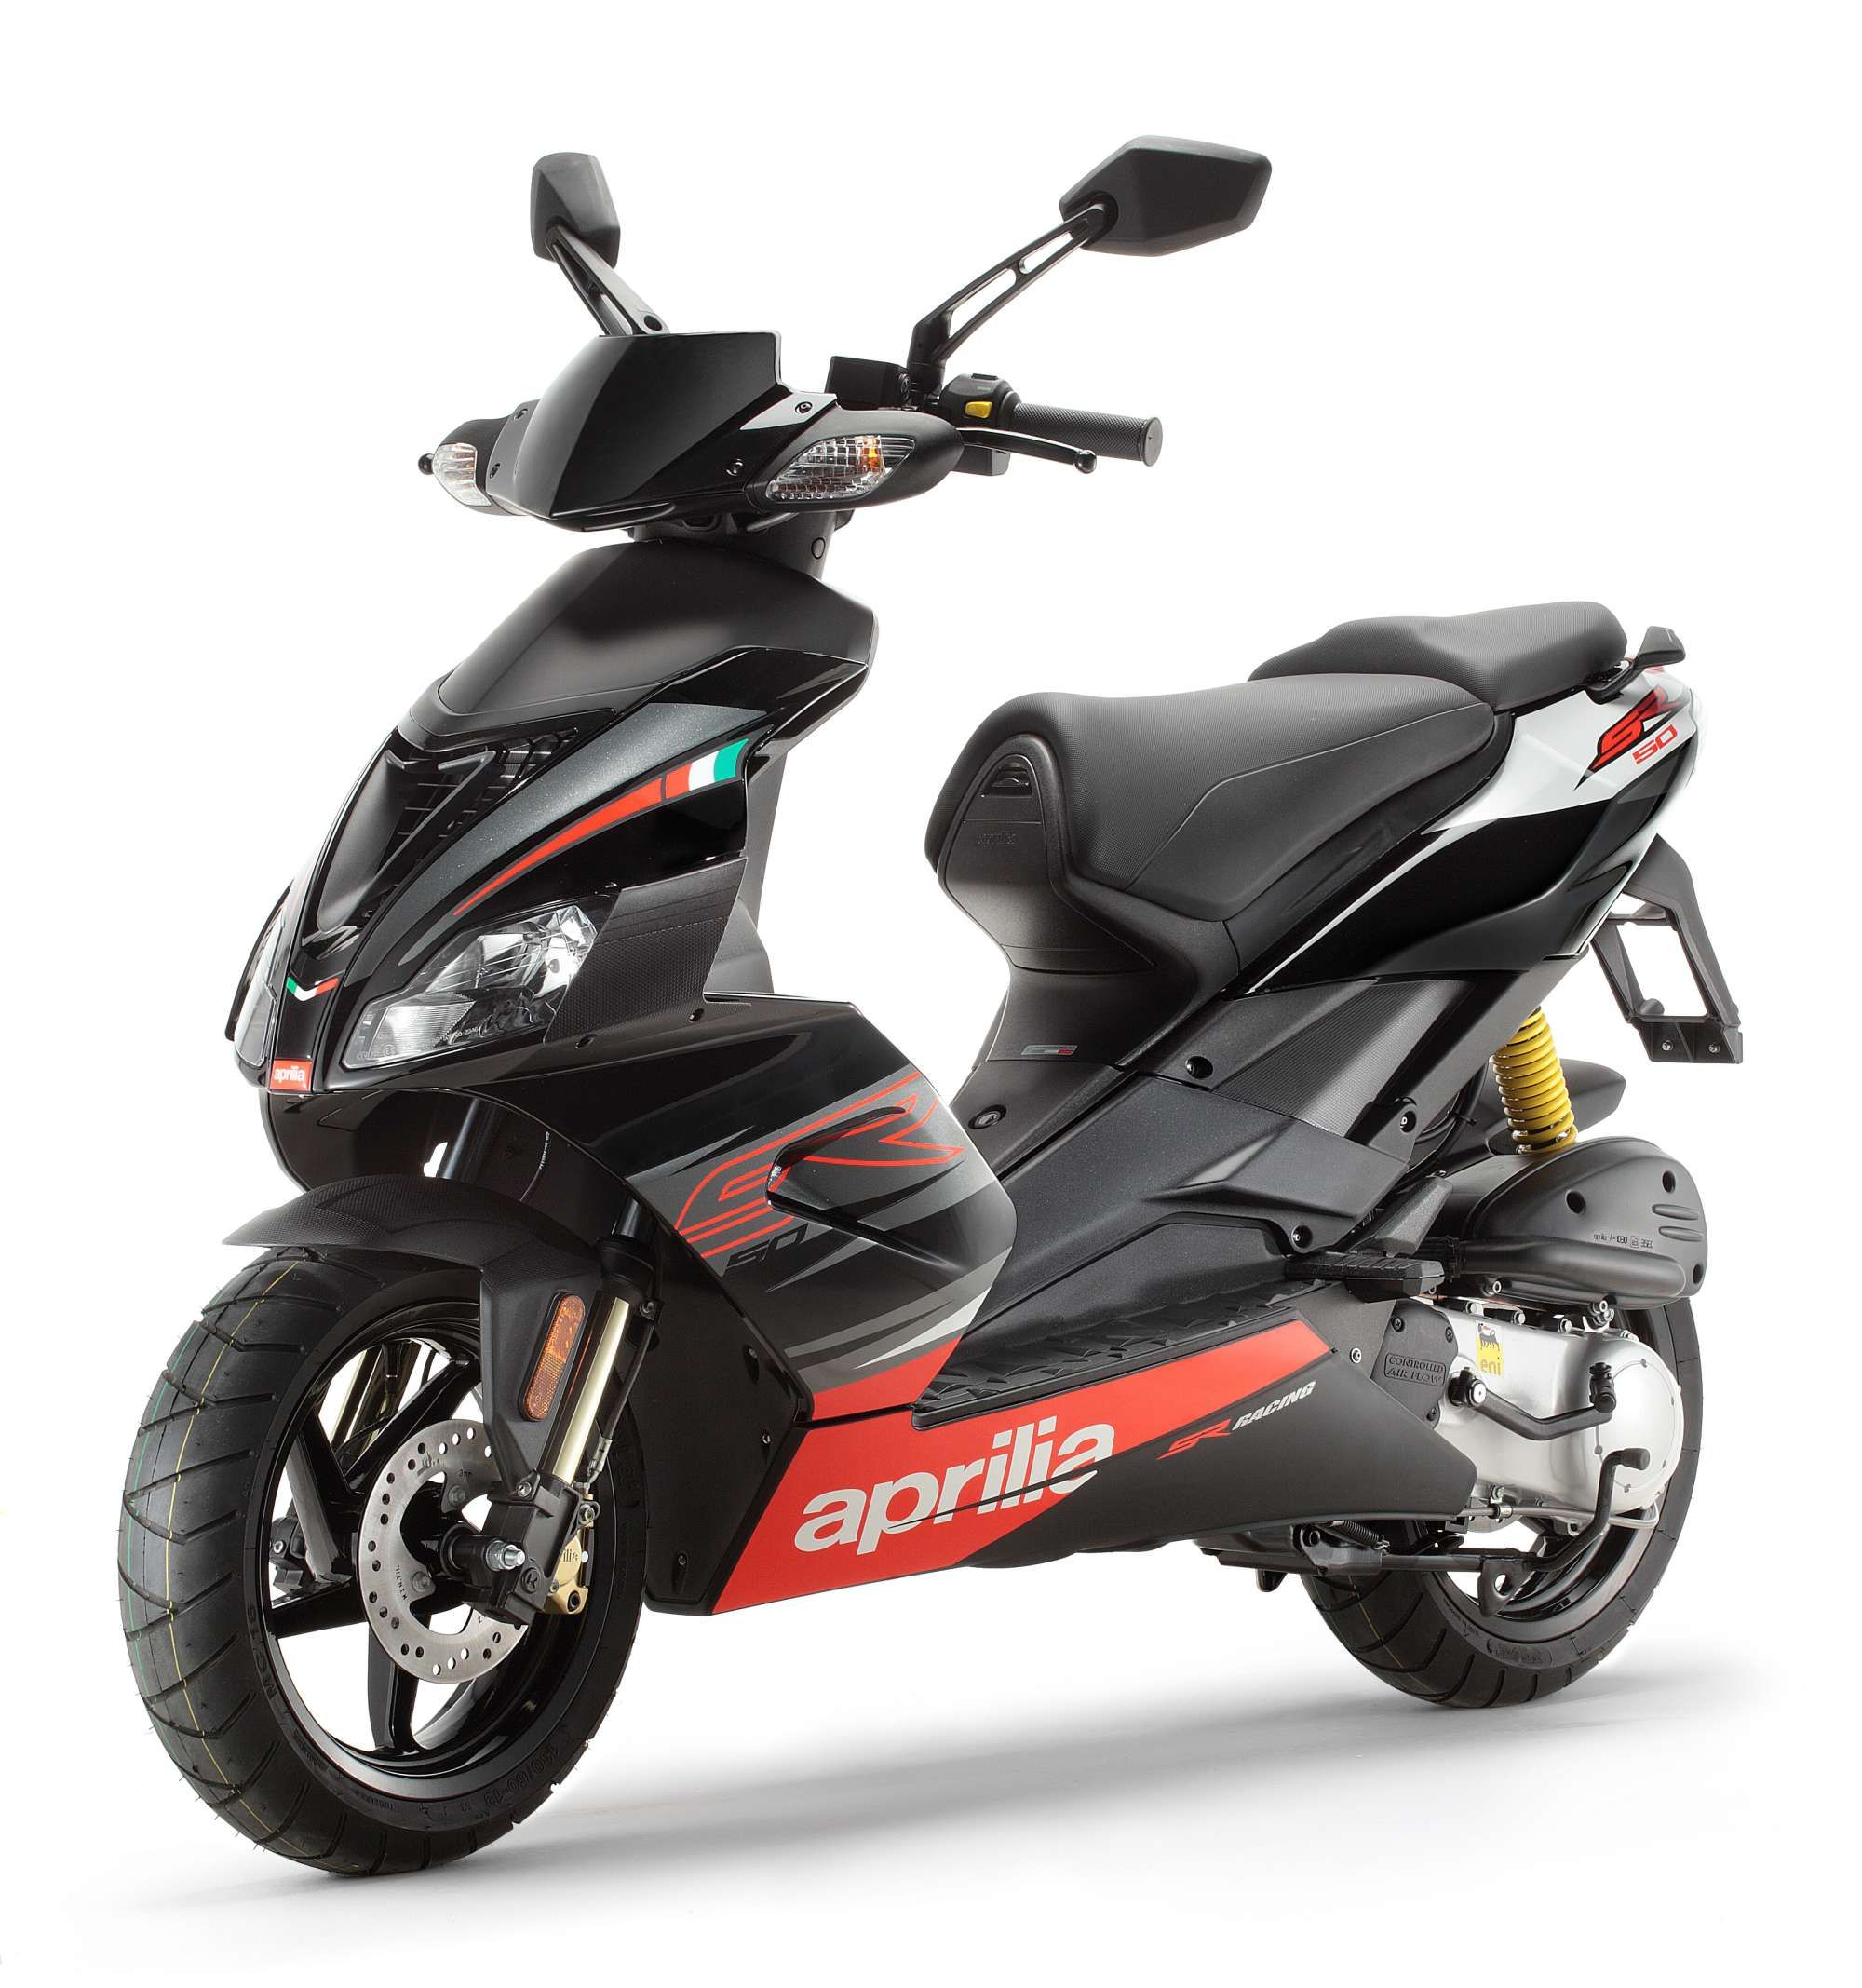 aprilia scooter 50cc images galleries with a bite. Black Bedroom Furniture Sets. Home Design Ideas